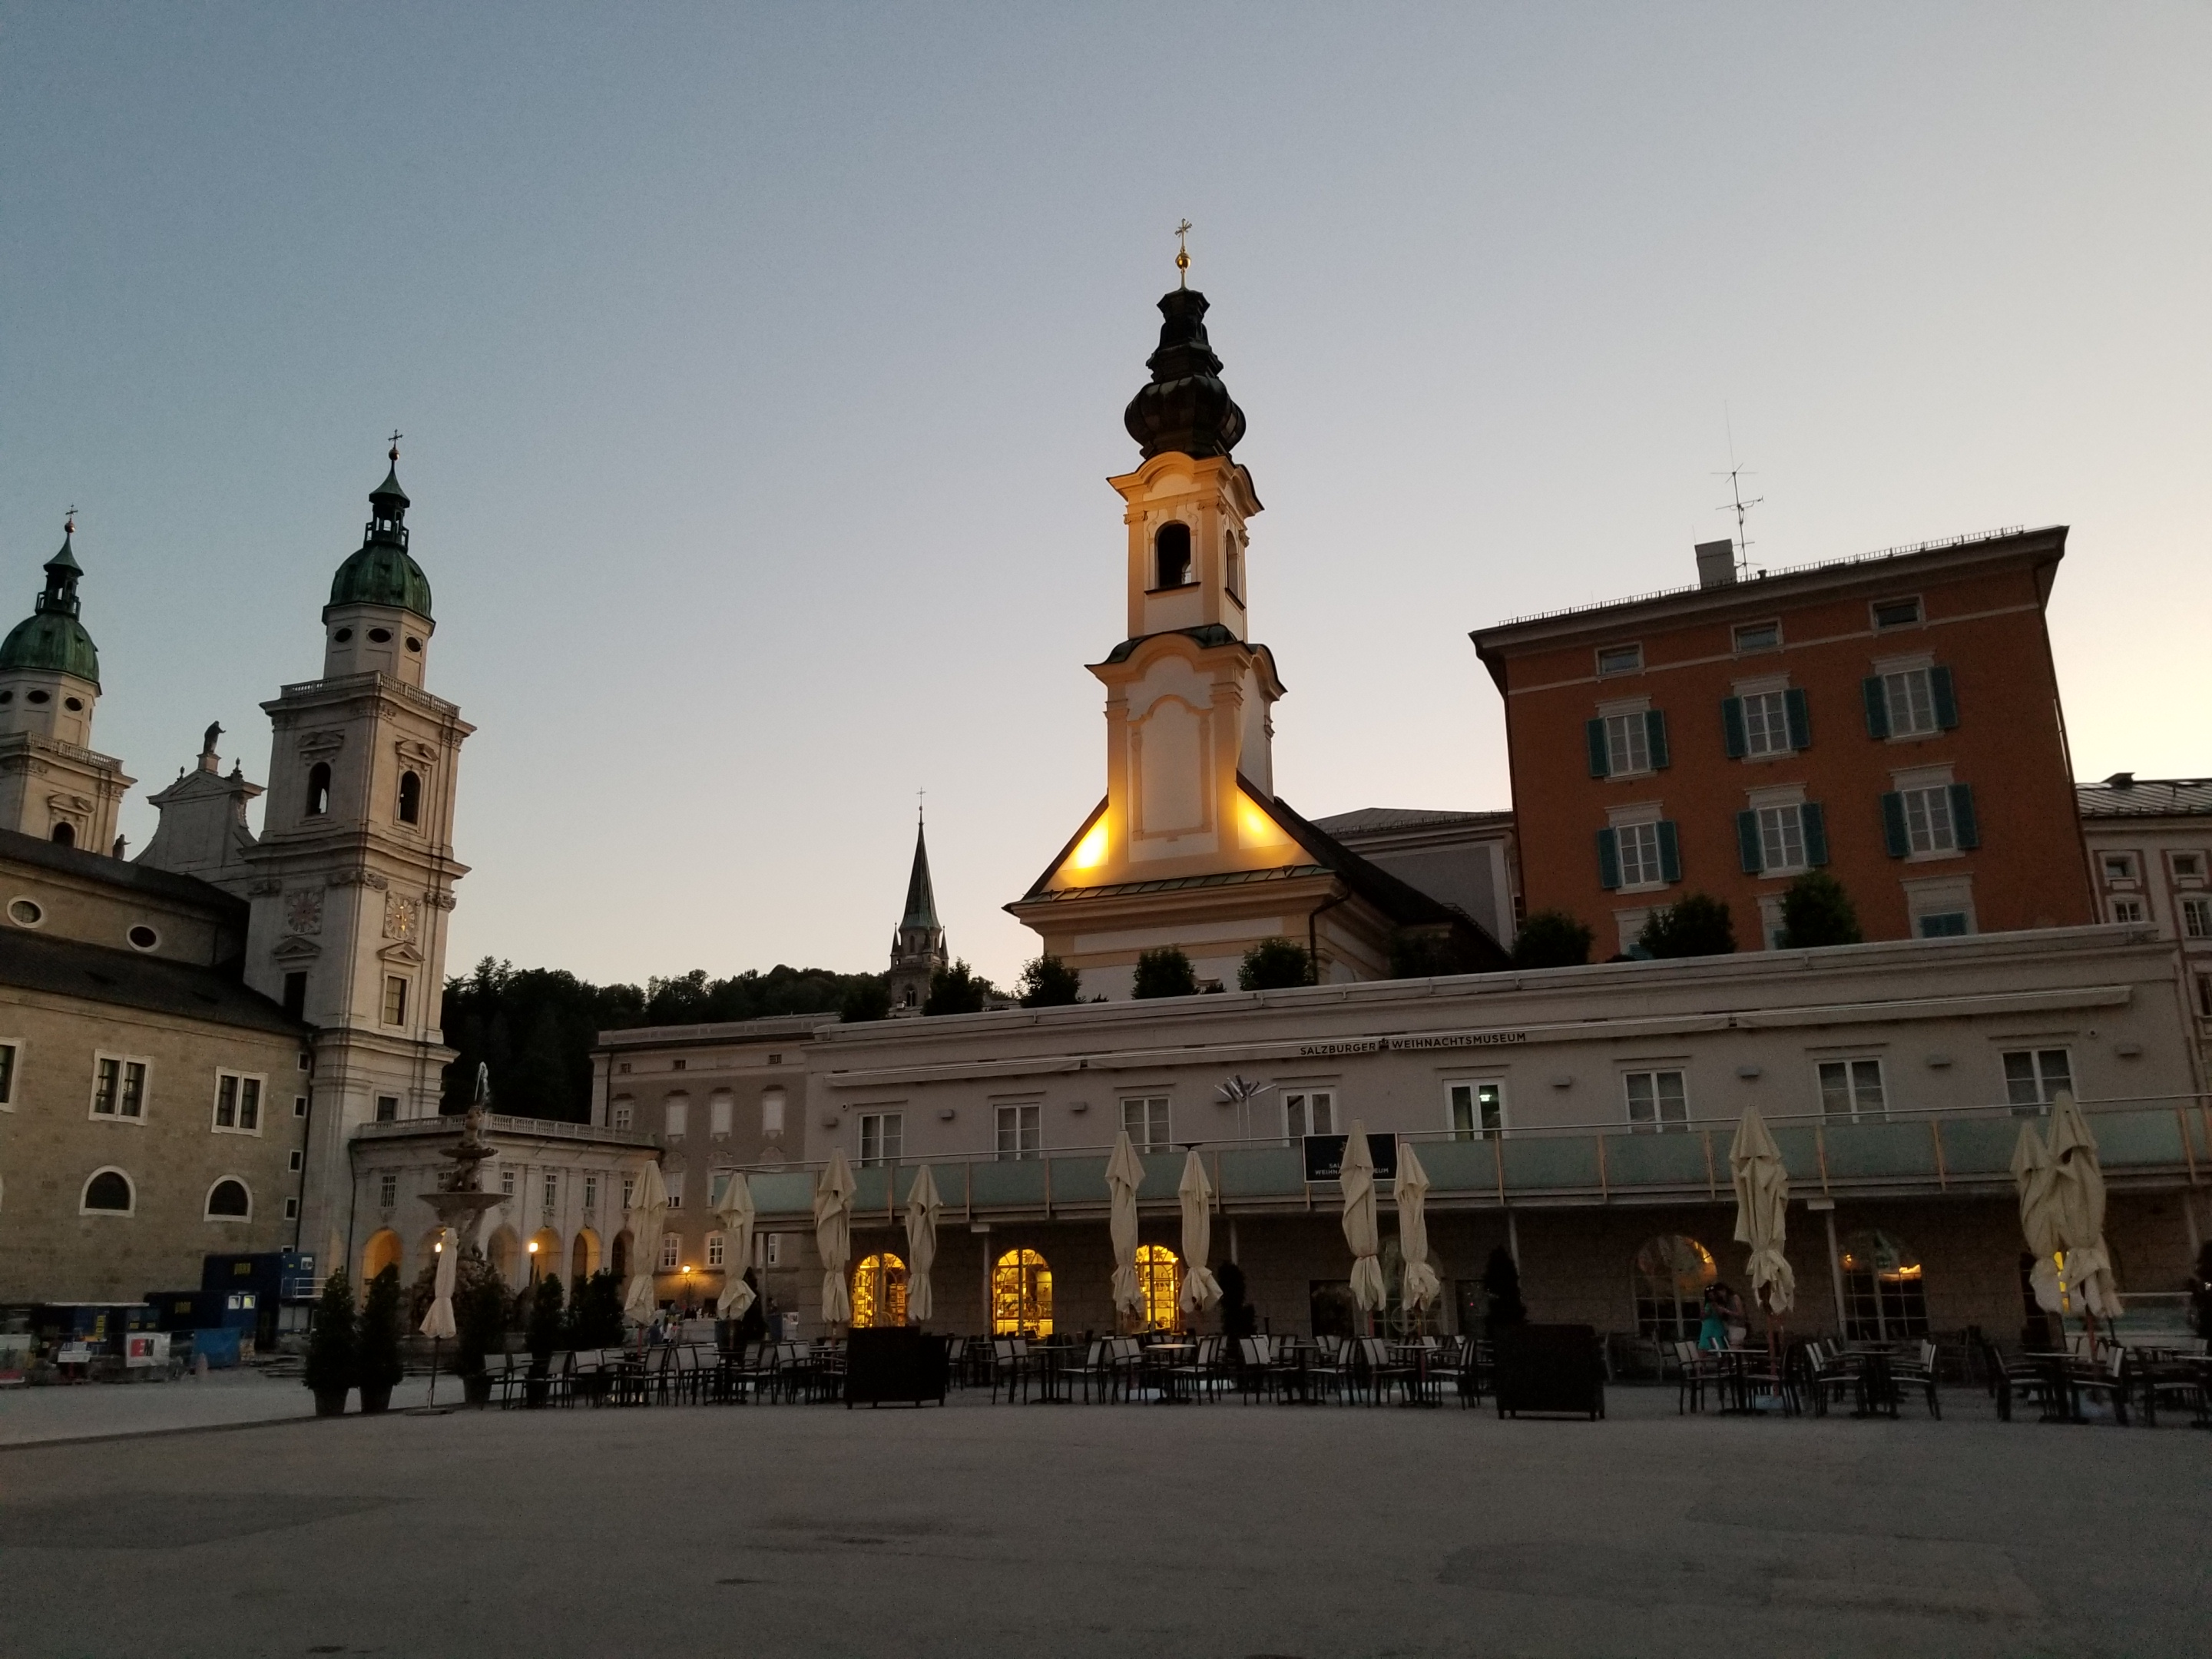 Salzburg's old town, at dusk